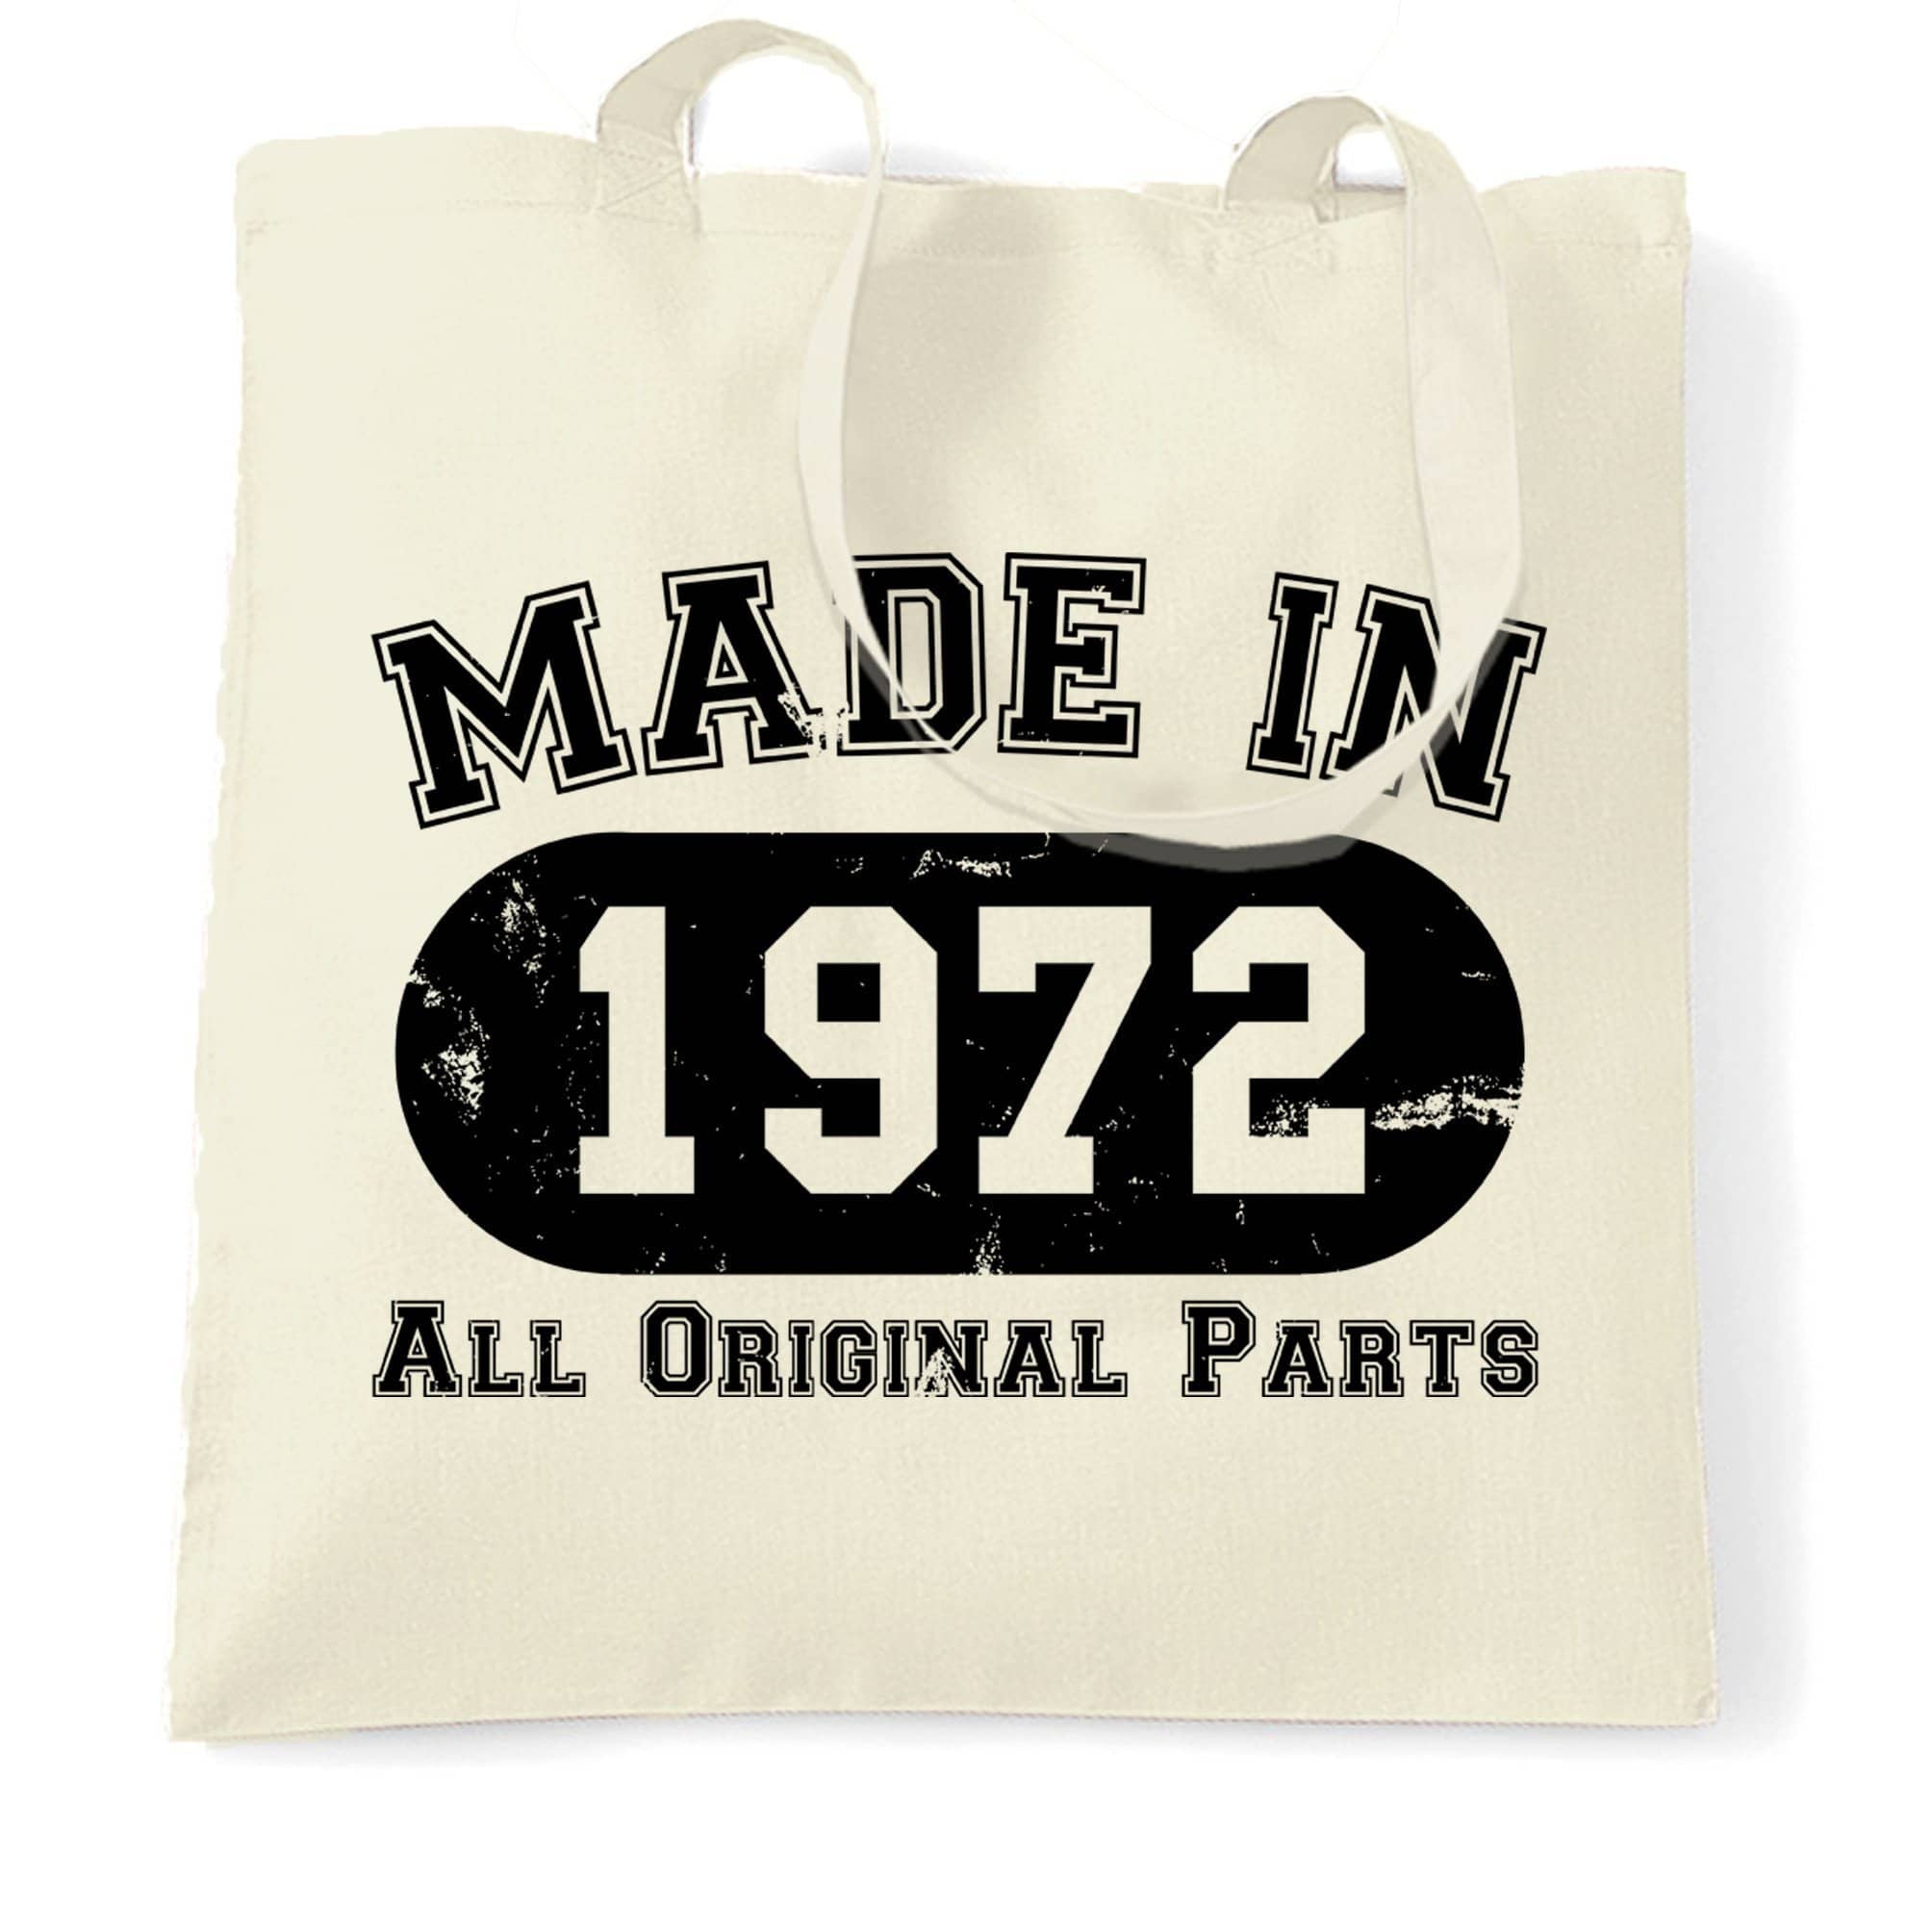 Made in 1972 All Original Parts Tote Bag [Distressed]